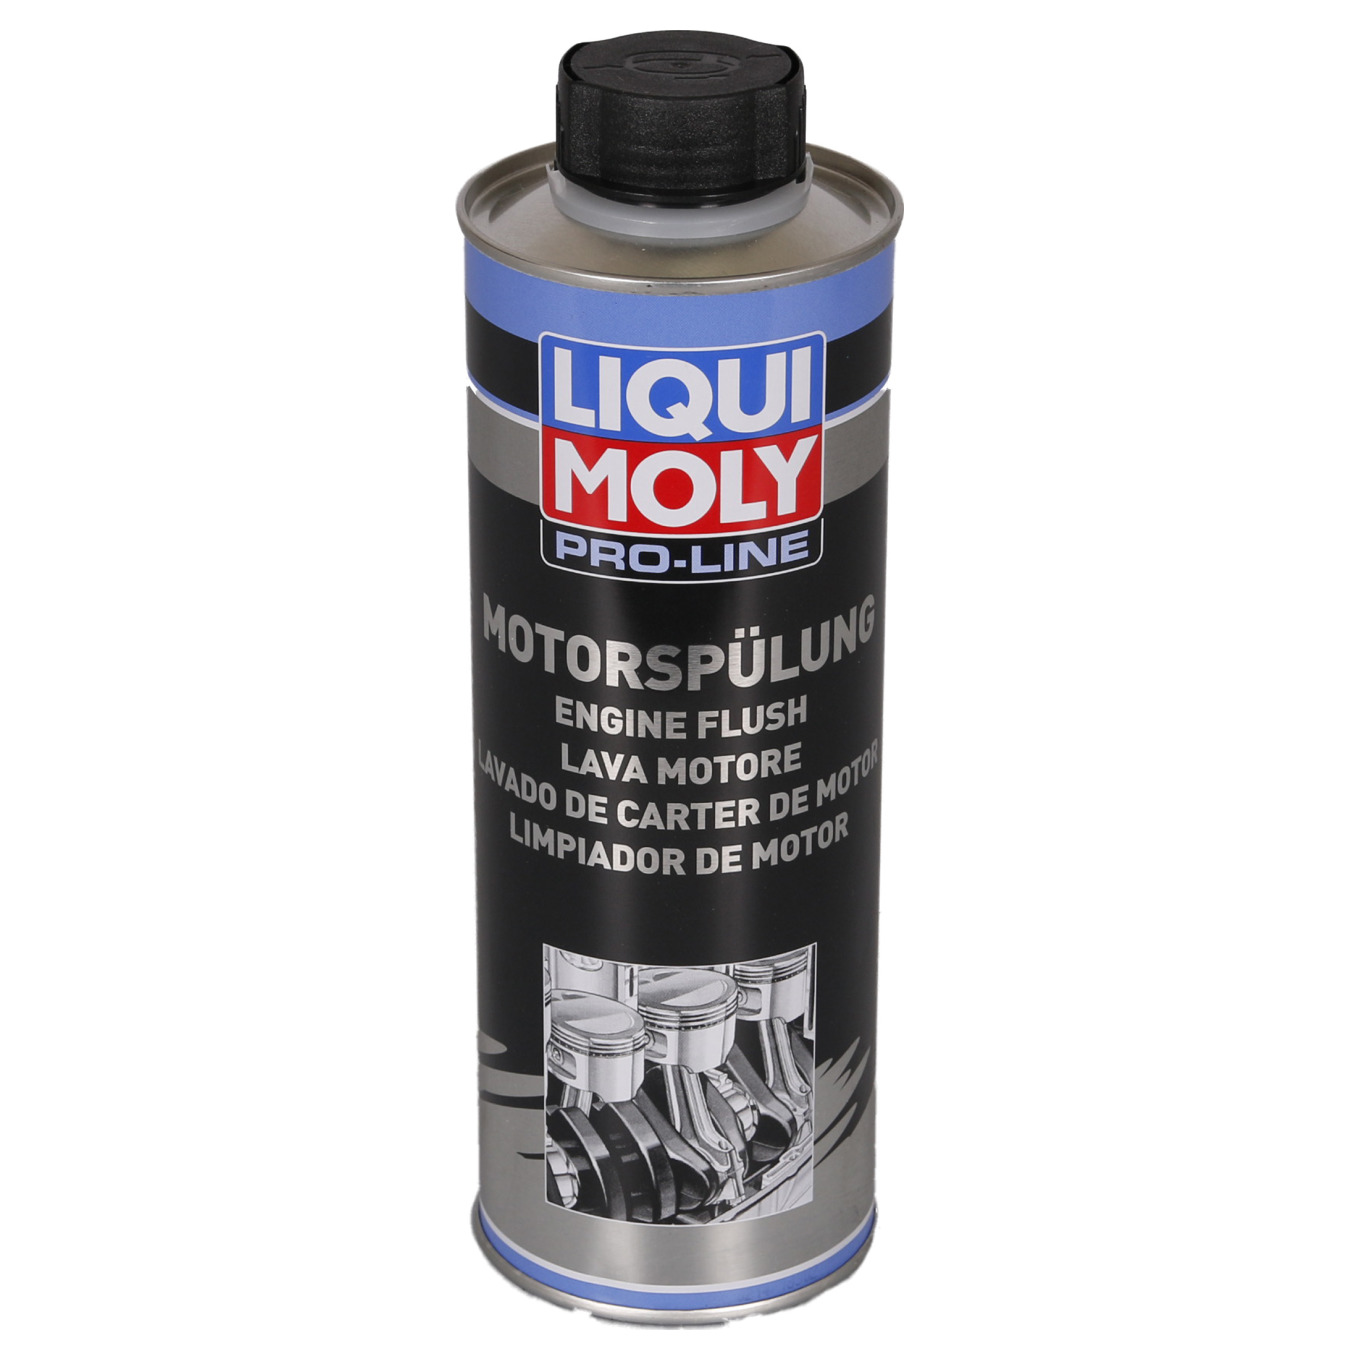 liqui moly pro line motorsp lung 500 ml preisvergleich. Black Bedroom Furniture Sets. Home Design Ideas